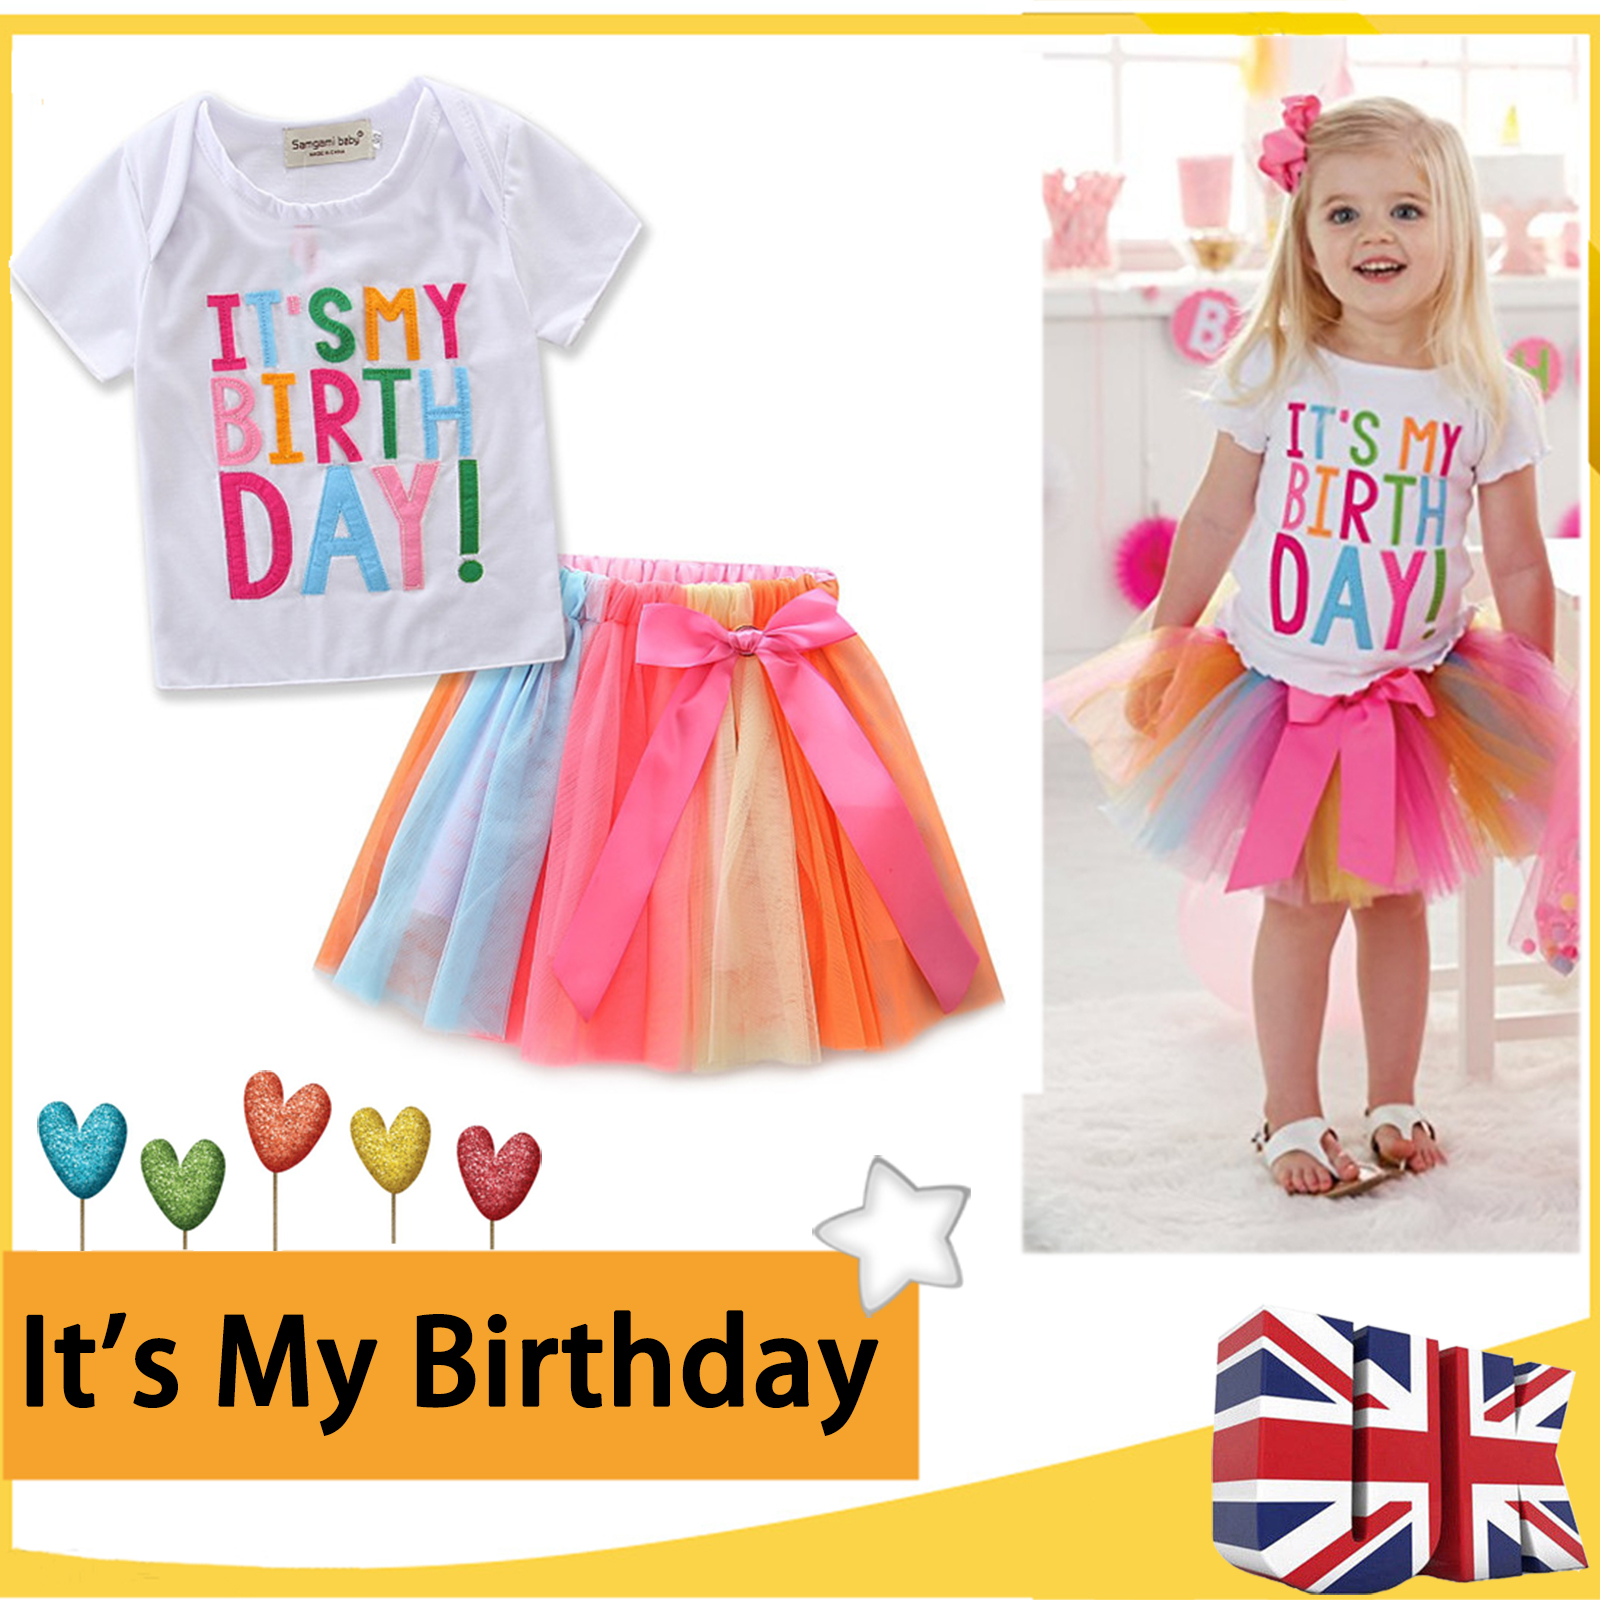 Details About Its My Birthday Party Dress Toddler Kids Girls T Shirt Cake Tutu Skirt Outfits